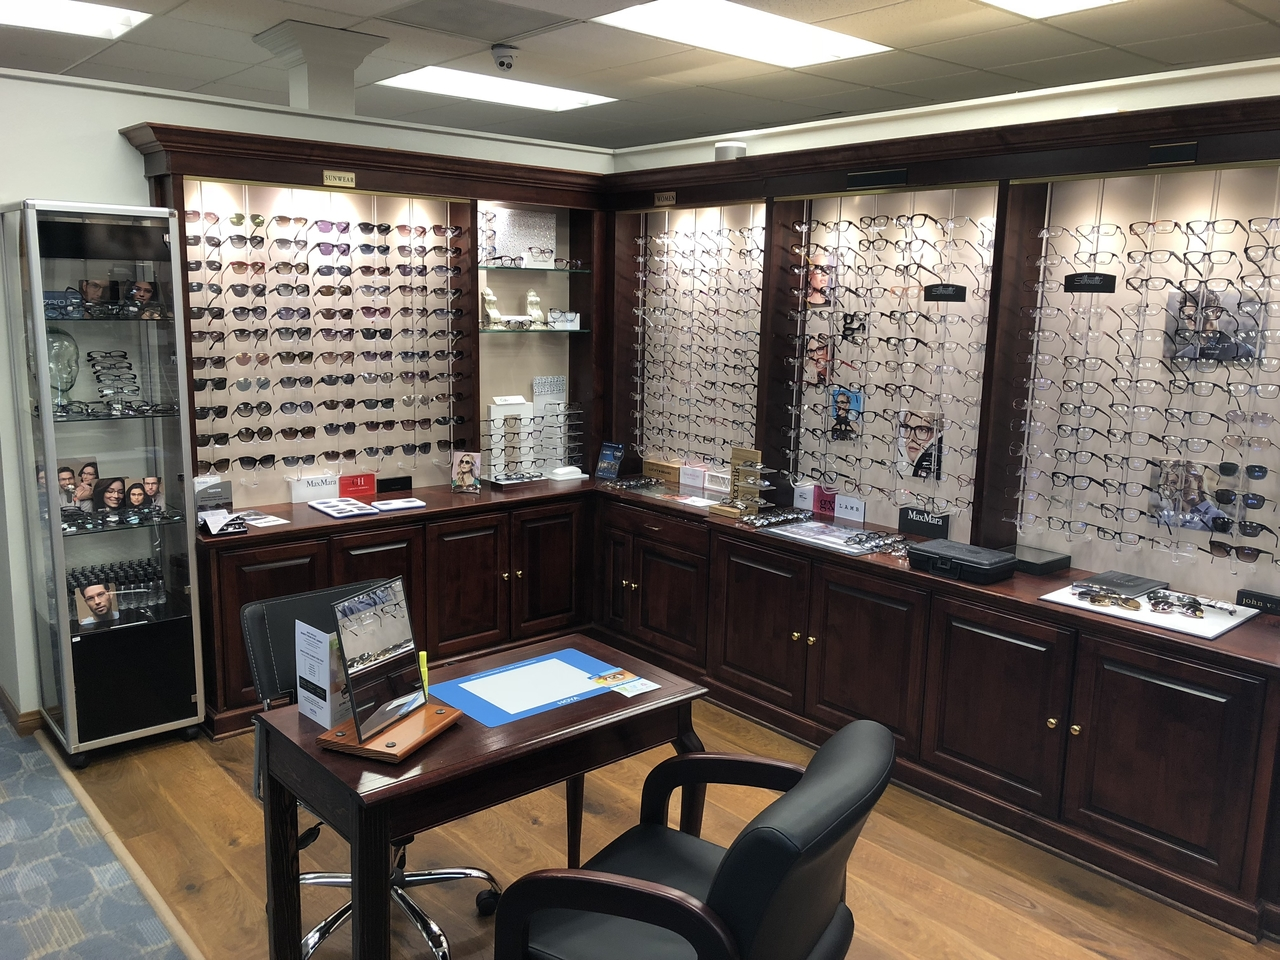 Buena Vista Optometry eye exam and optical store in location 1889 Knoll Dr, Ventura, CA 93003 United States